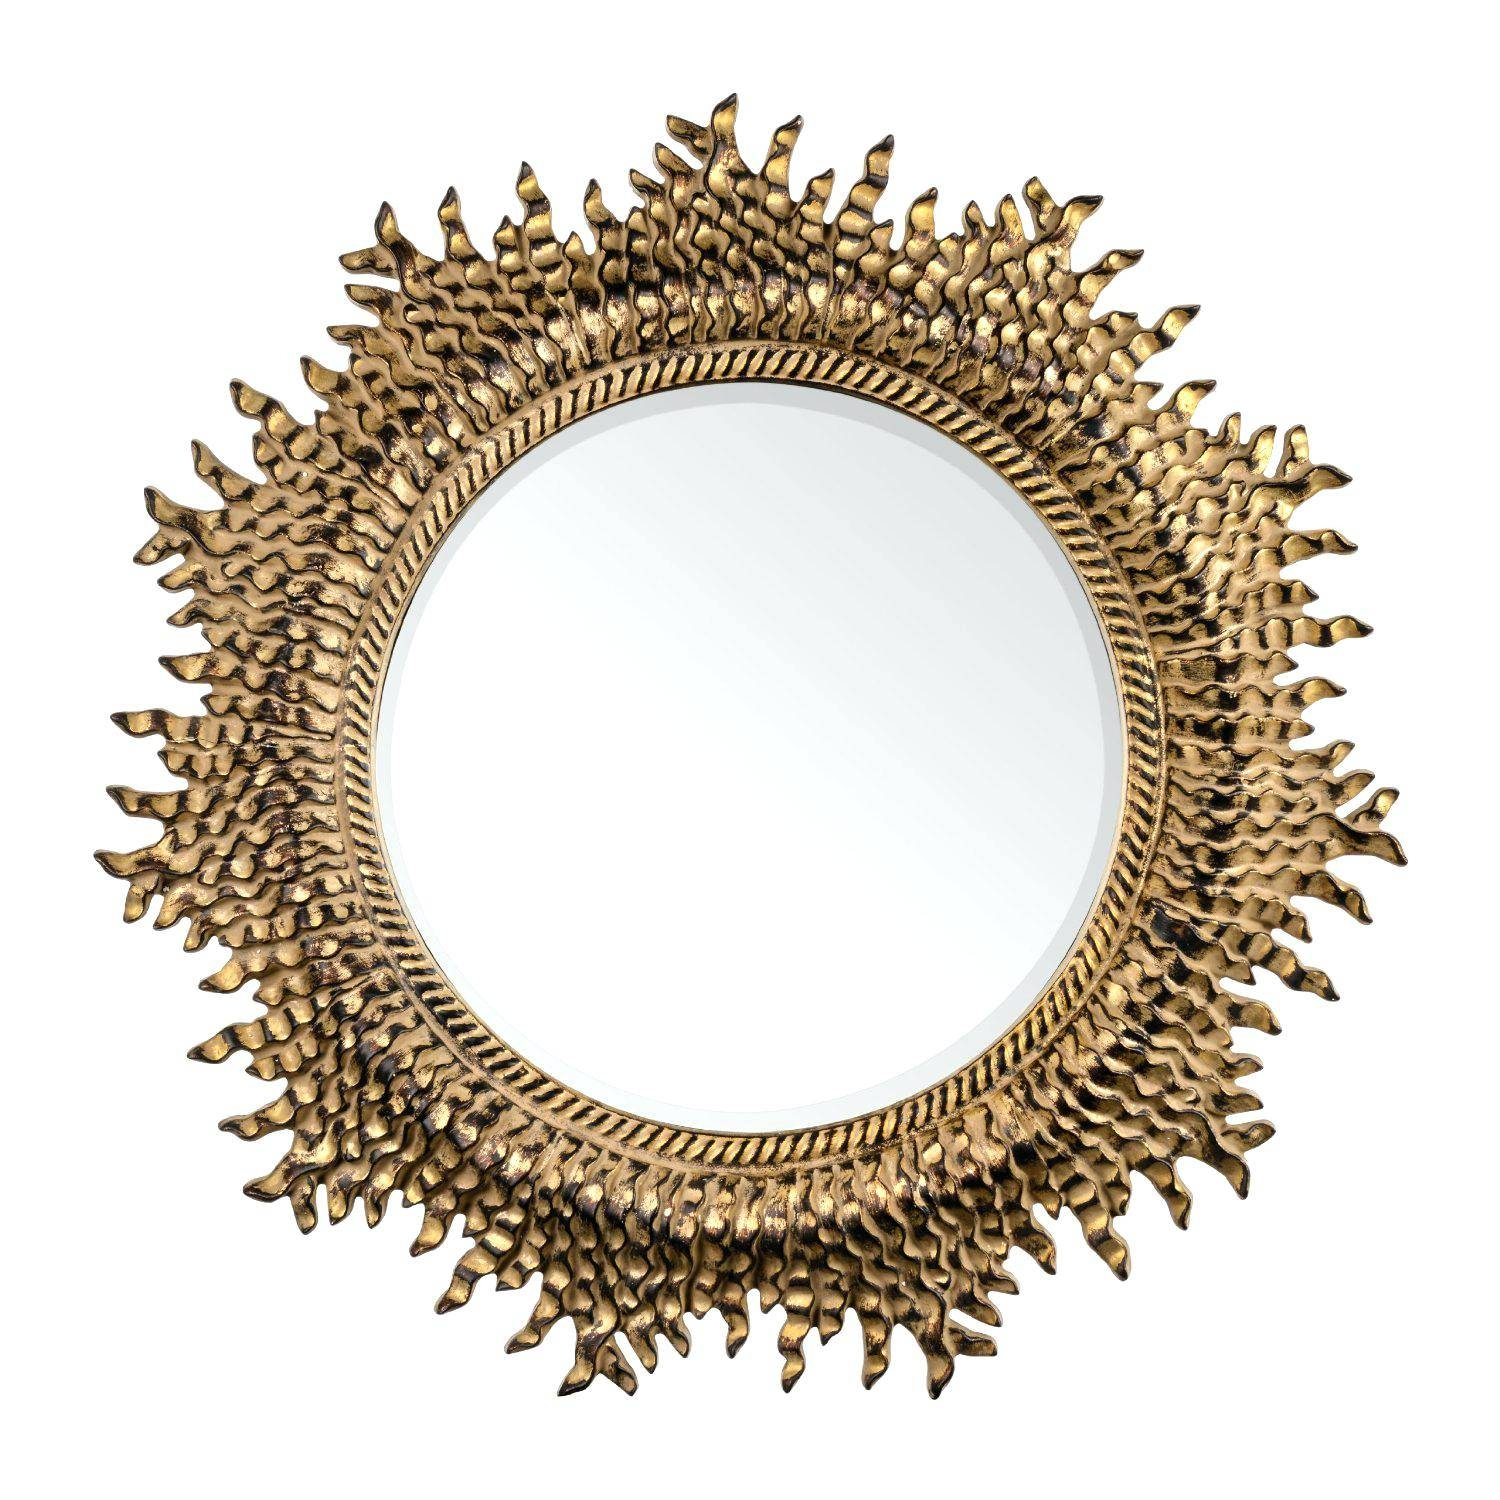 Infernoornate Gilt Framed Mirrors Ornate Mirror Nz – Shopwiz with Gilt Framed Mirrors (Image 11 of 25)